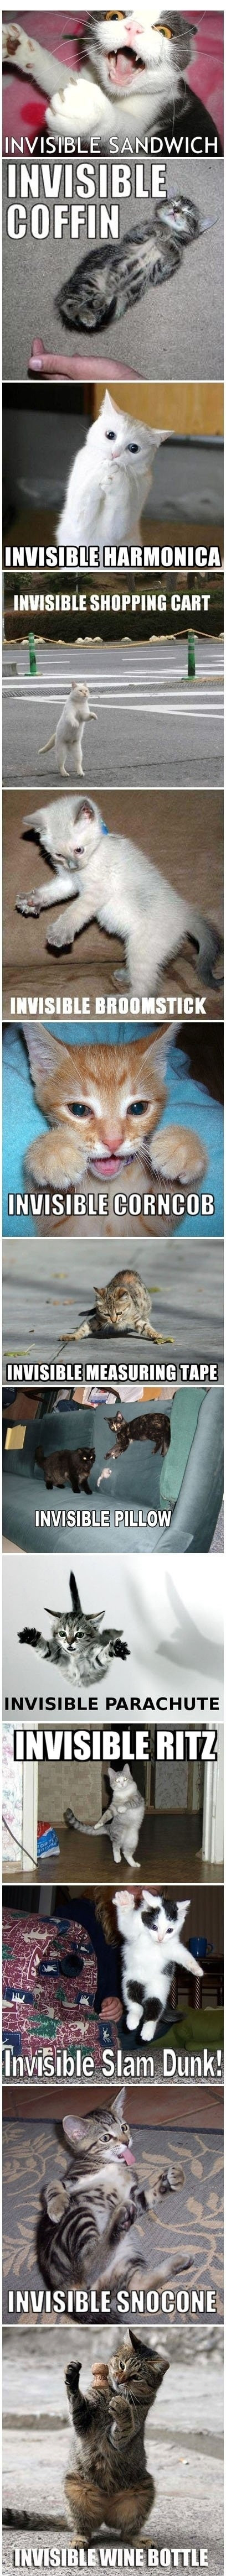 Cats doing invisible things